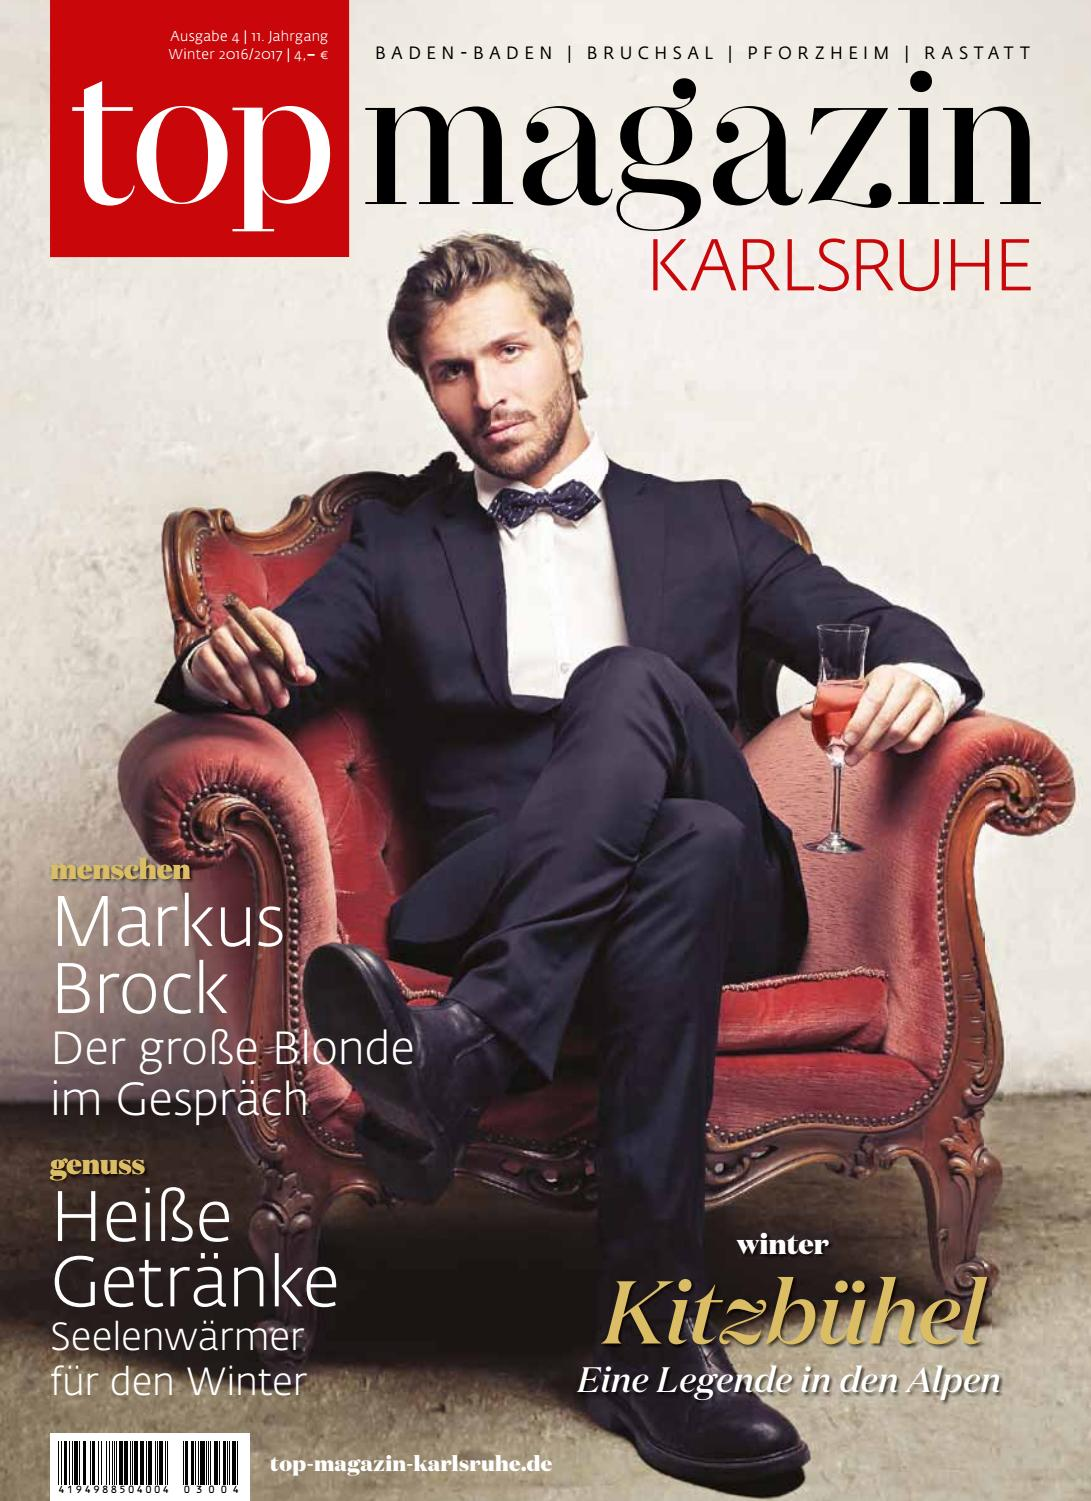 Top Magazin Karlsruhe Winter 2016 by Top Magazin - issuu